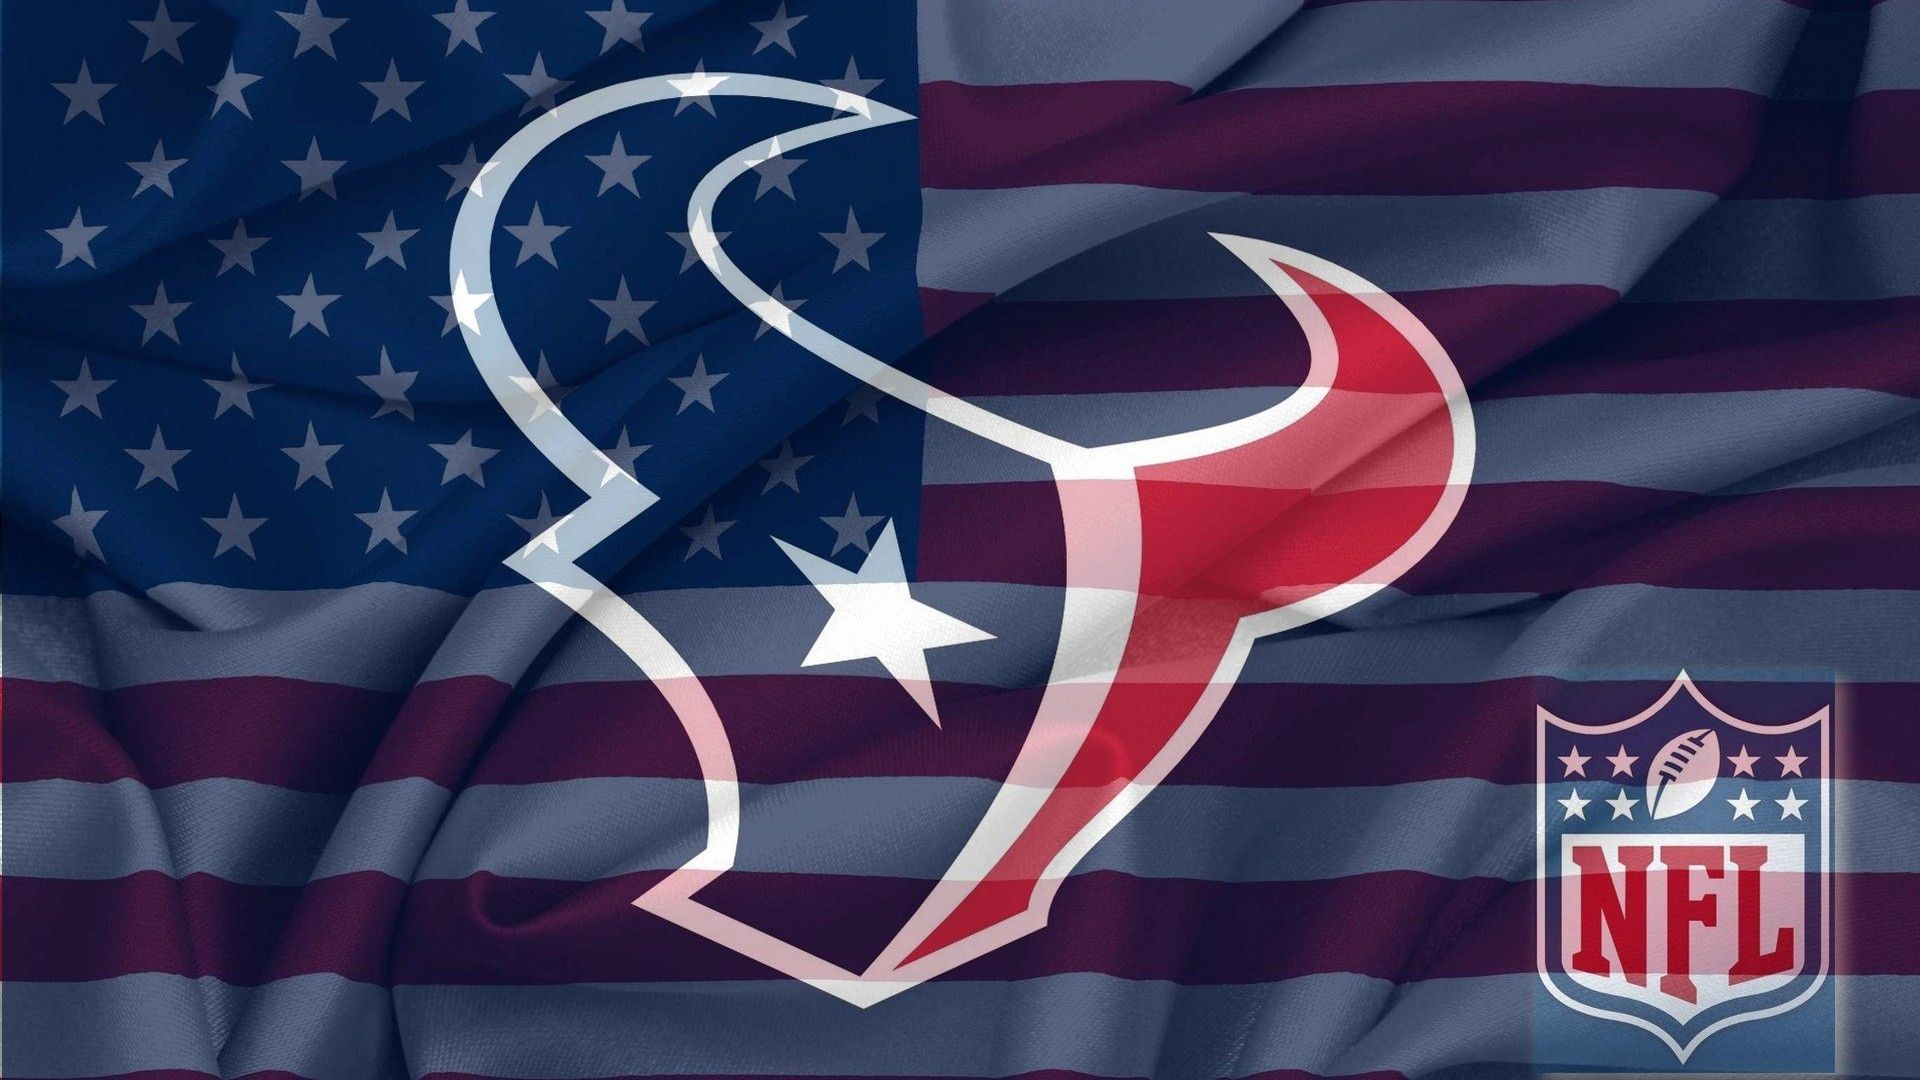 Houston Texans Wallpaper For Mac Backgrounds Wallpapers 1920x1080